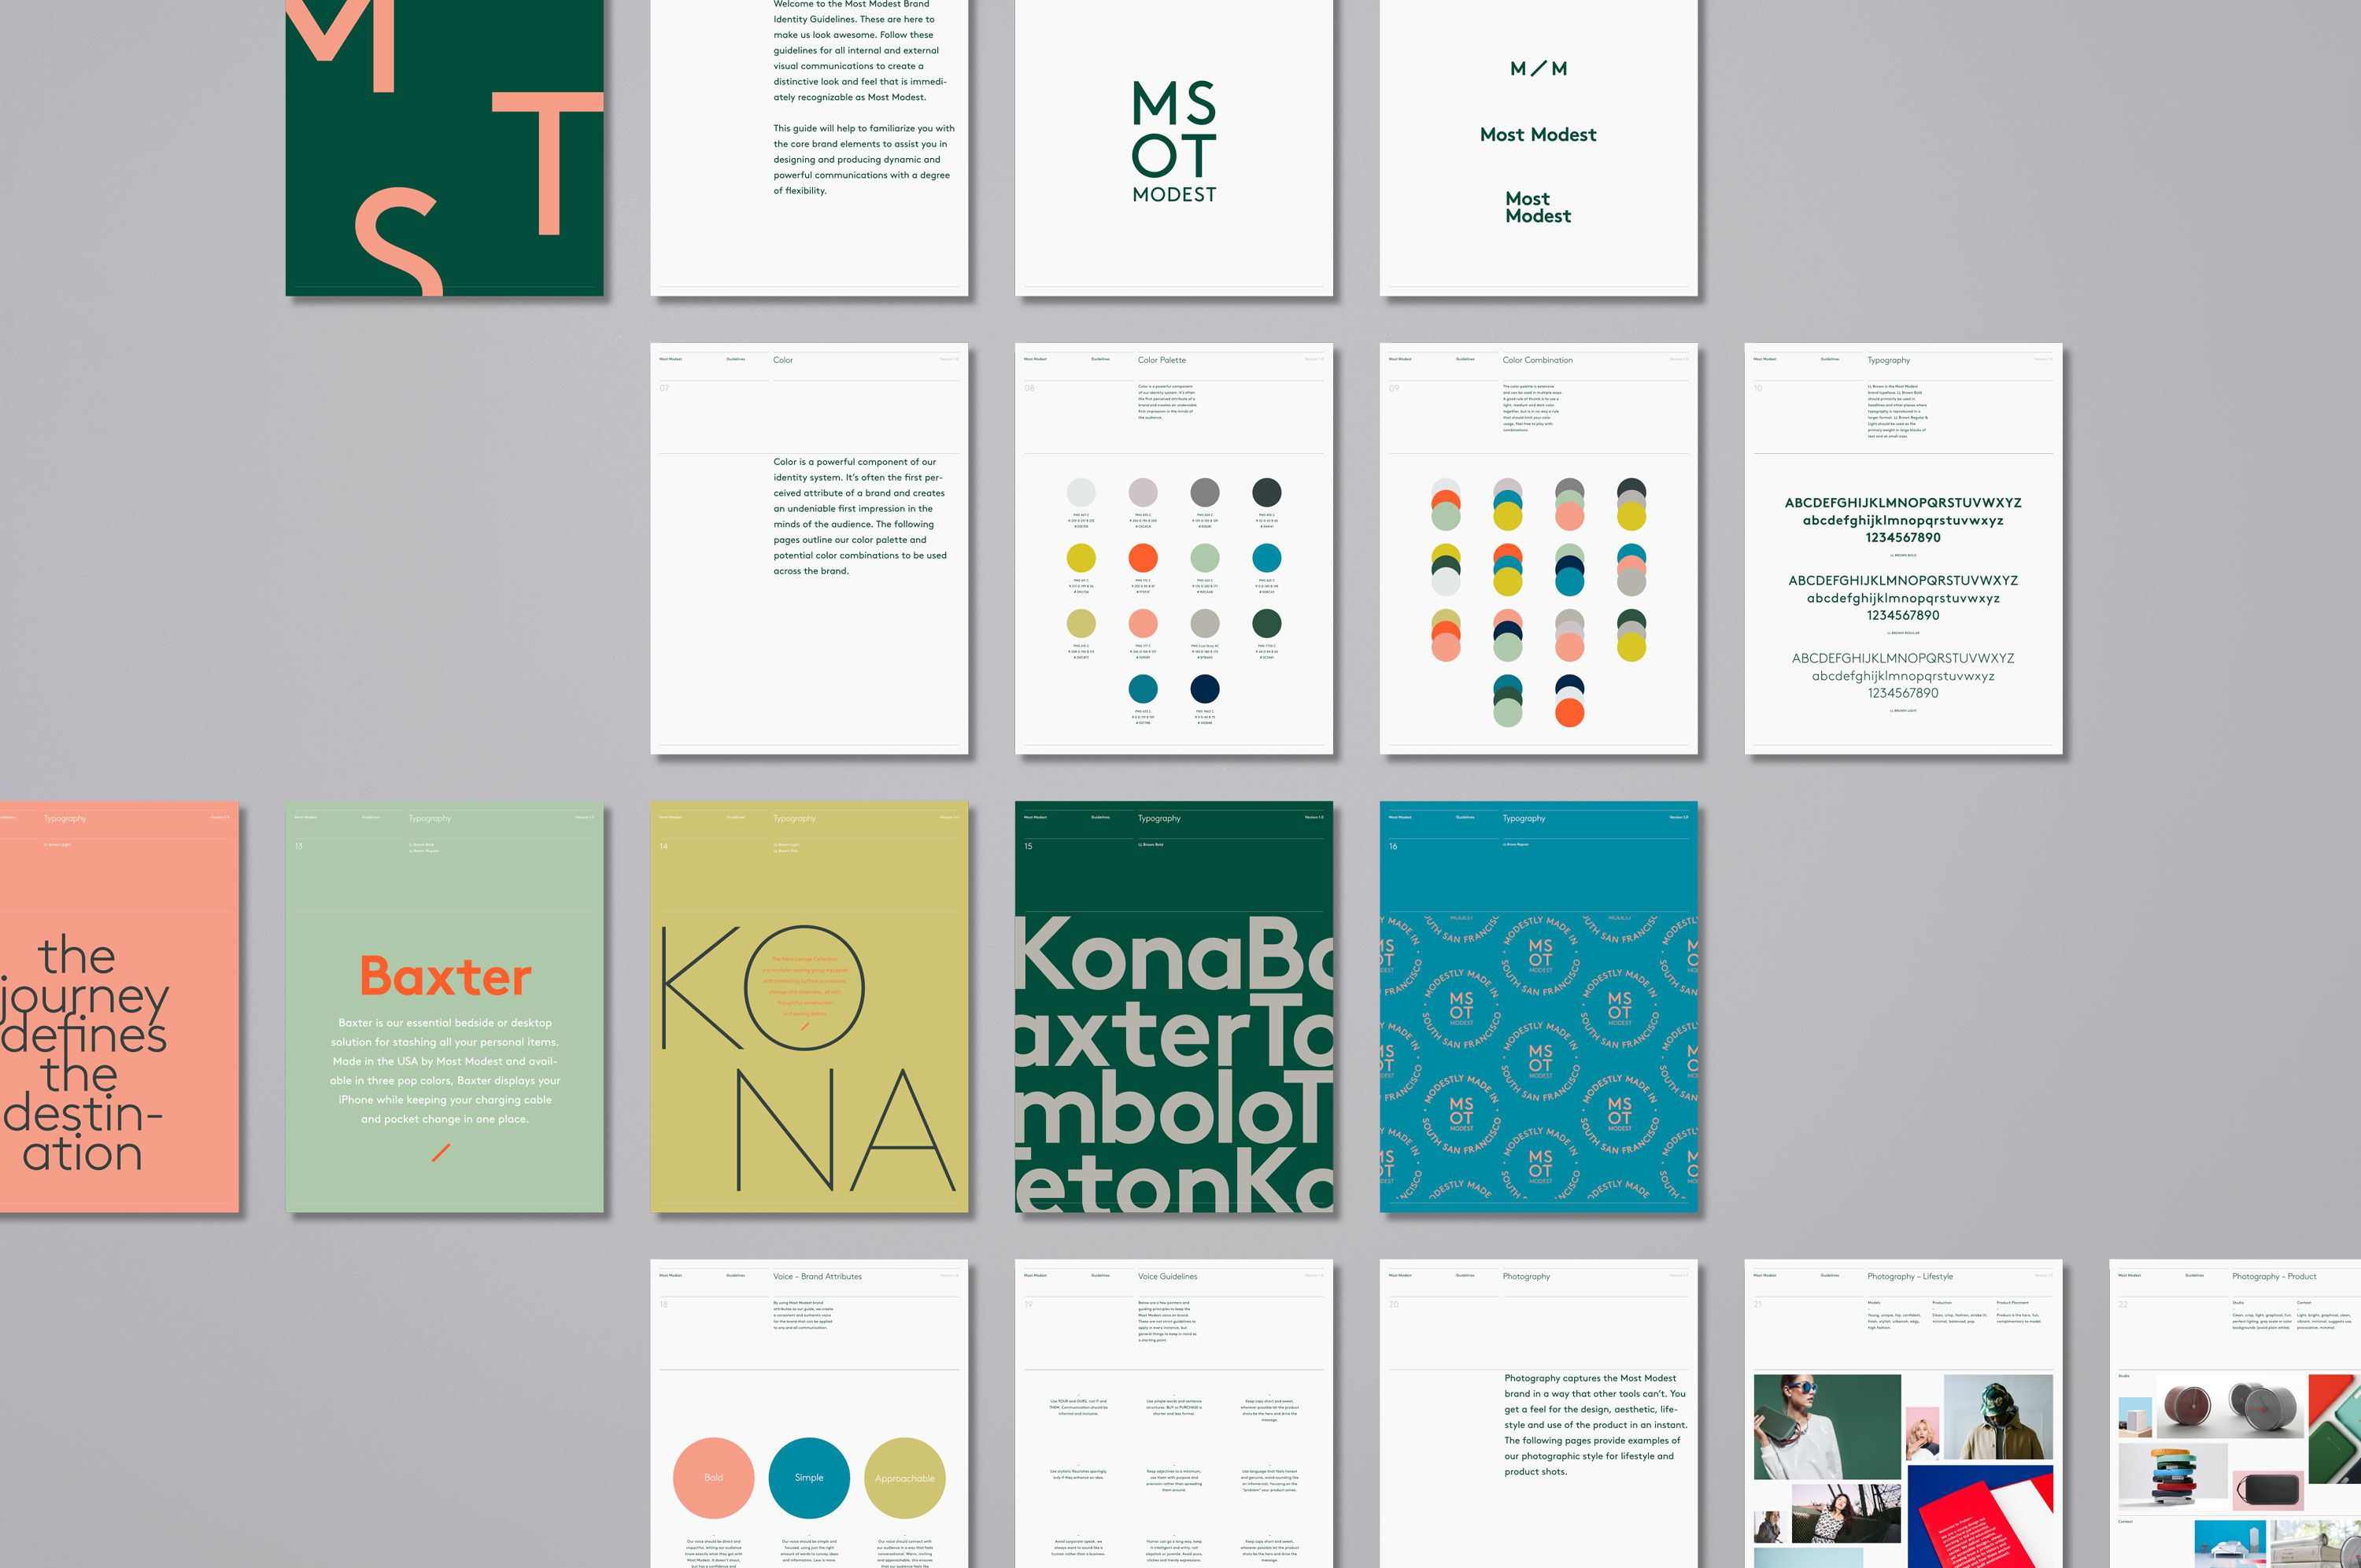 San Francisco Design Studio Most Modest Visual Identity Branding Design Packaging Brand Guidelines